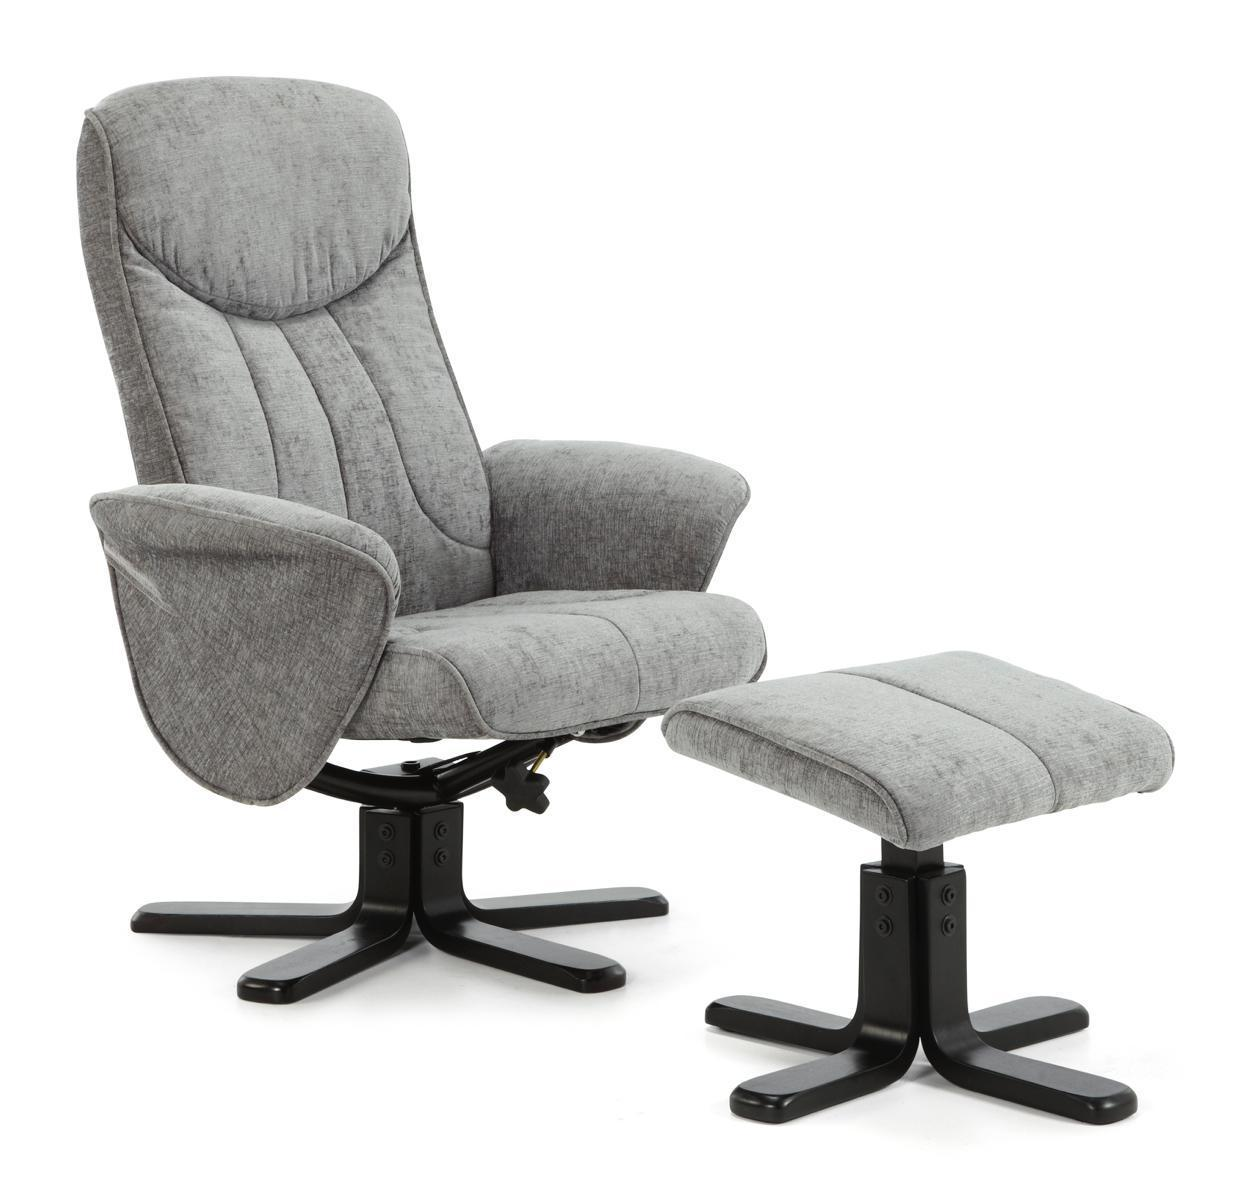 shop now stavern swivel and fabric recliner chair steel by serene